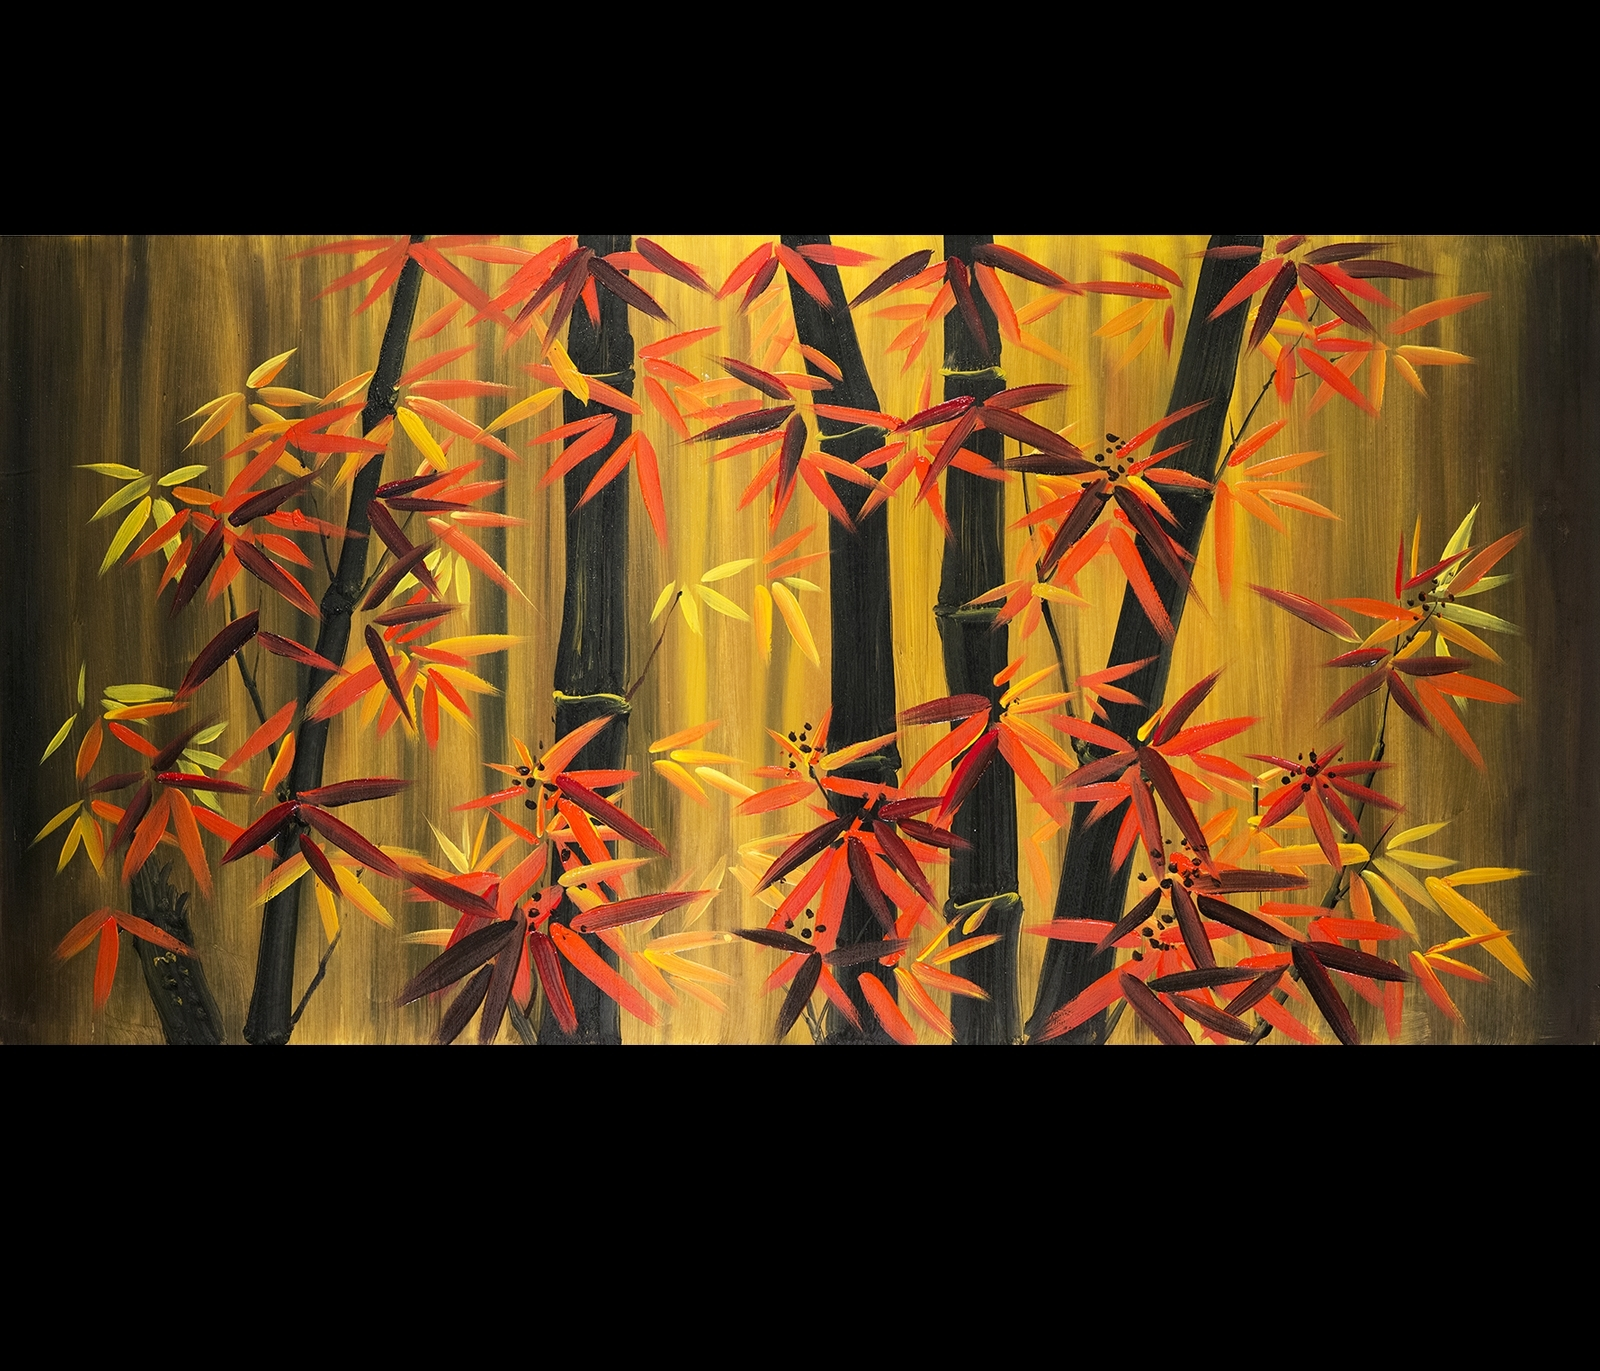 Artwork Canvas Art Fine Art Prints Wall Art Japanese Bamboo Art With Regard To Current Japanese Canvas Wall Art (View 4 of 15)